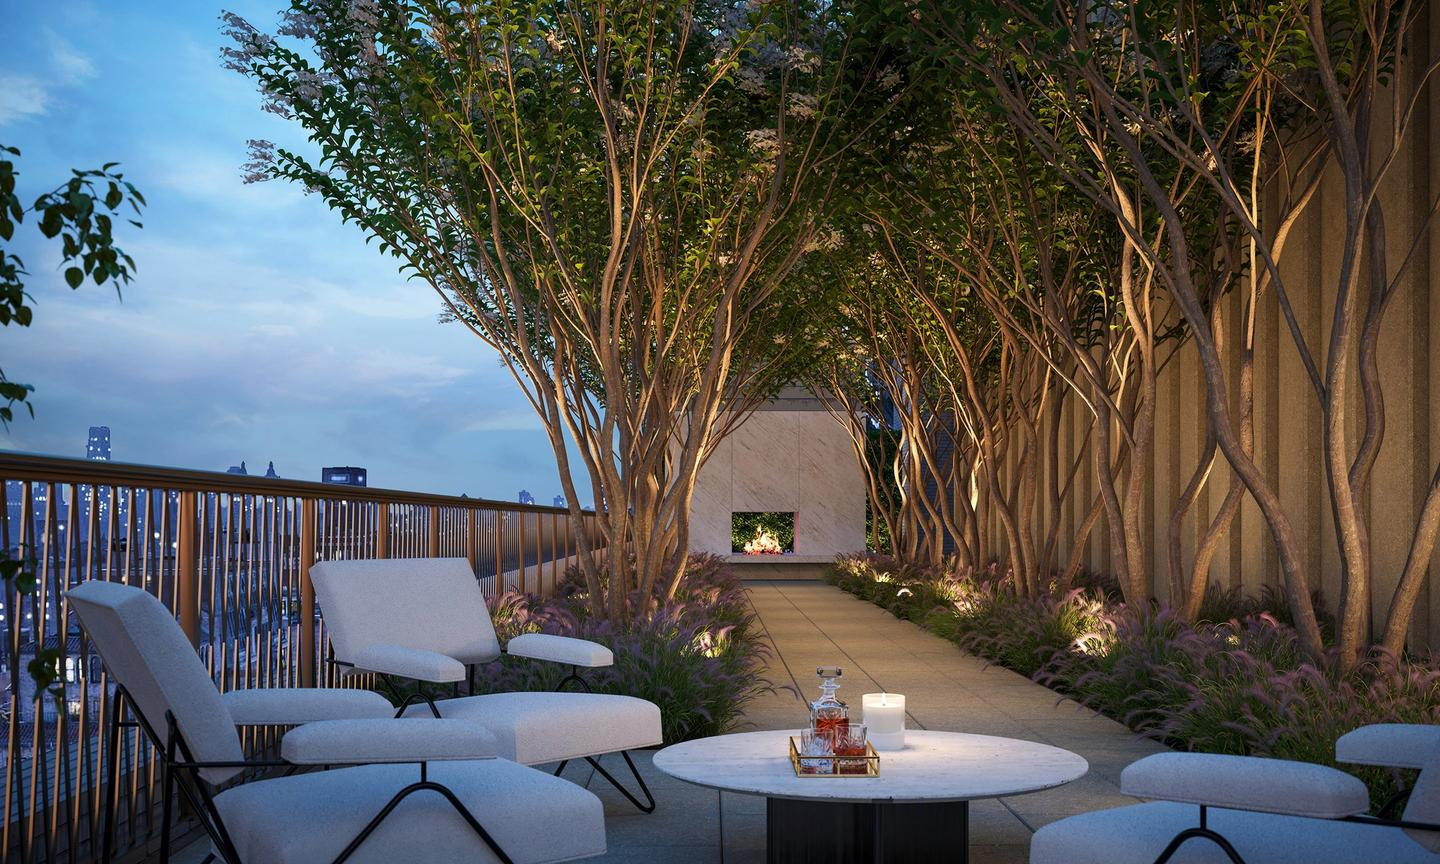 Penthouse 20 private roof terrace with Crepe Myrtle tree allée and outdoor fireplace